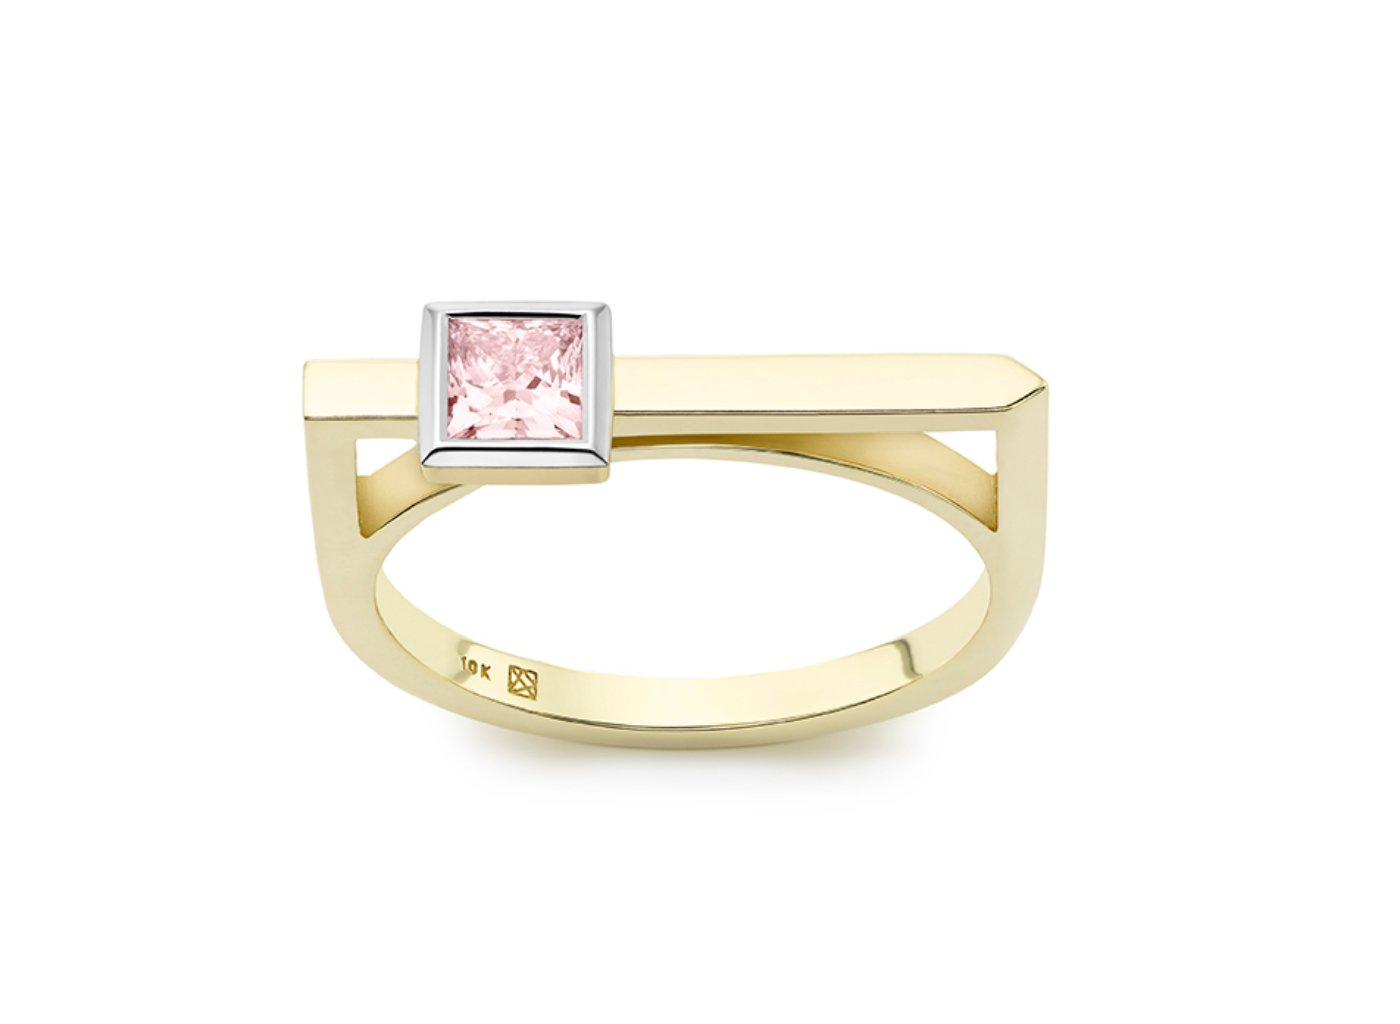 Front view of Princess linear 3/8 carat ring with pink diamond